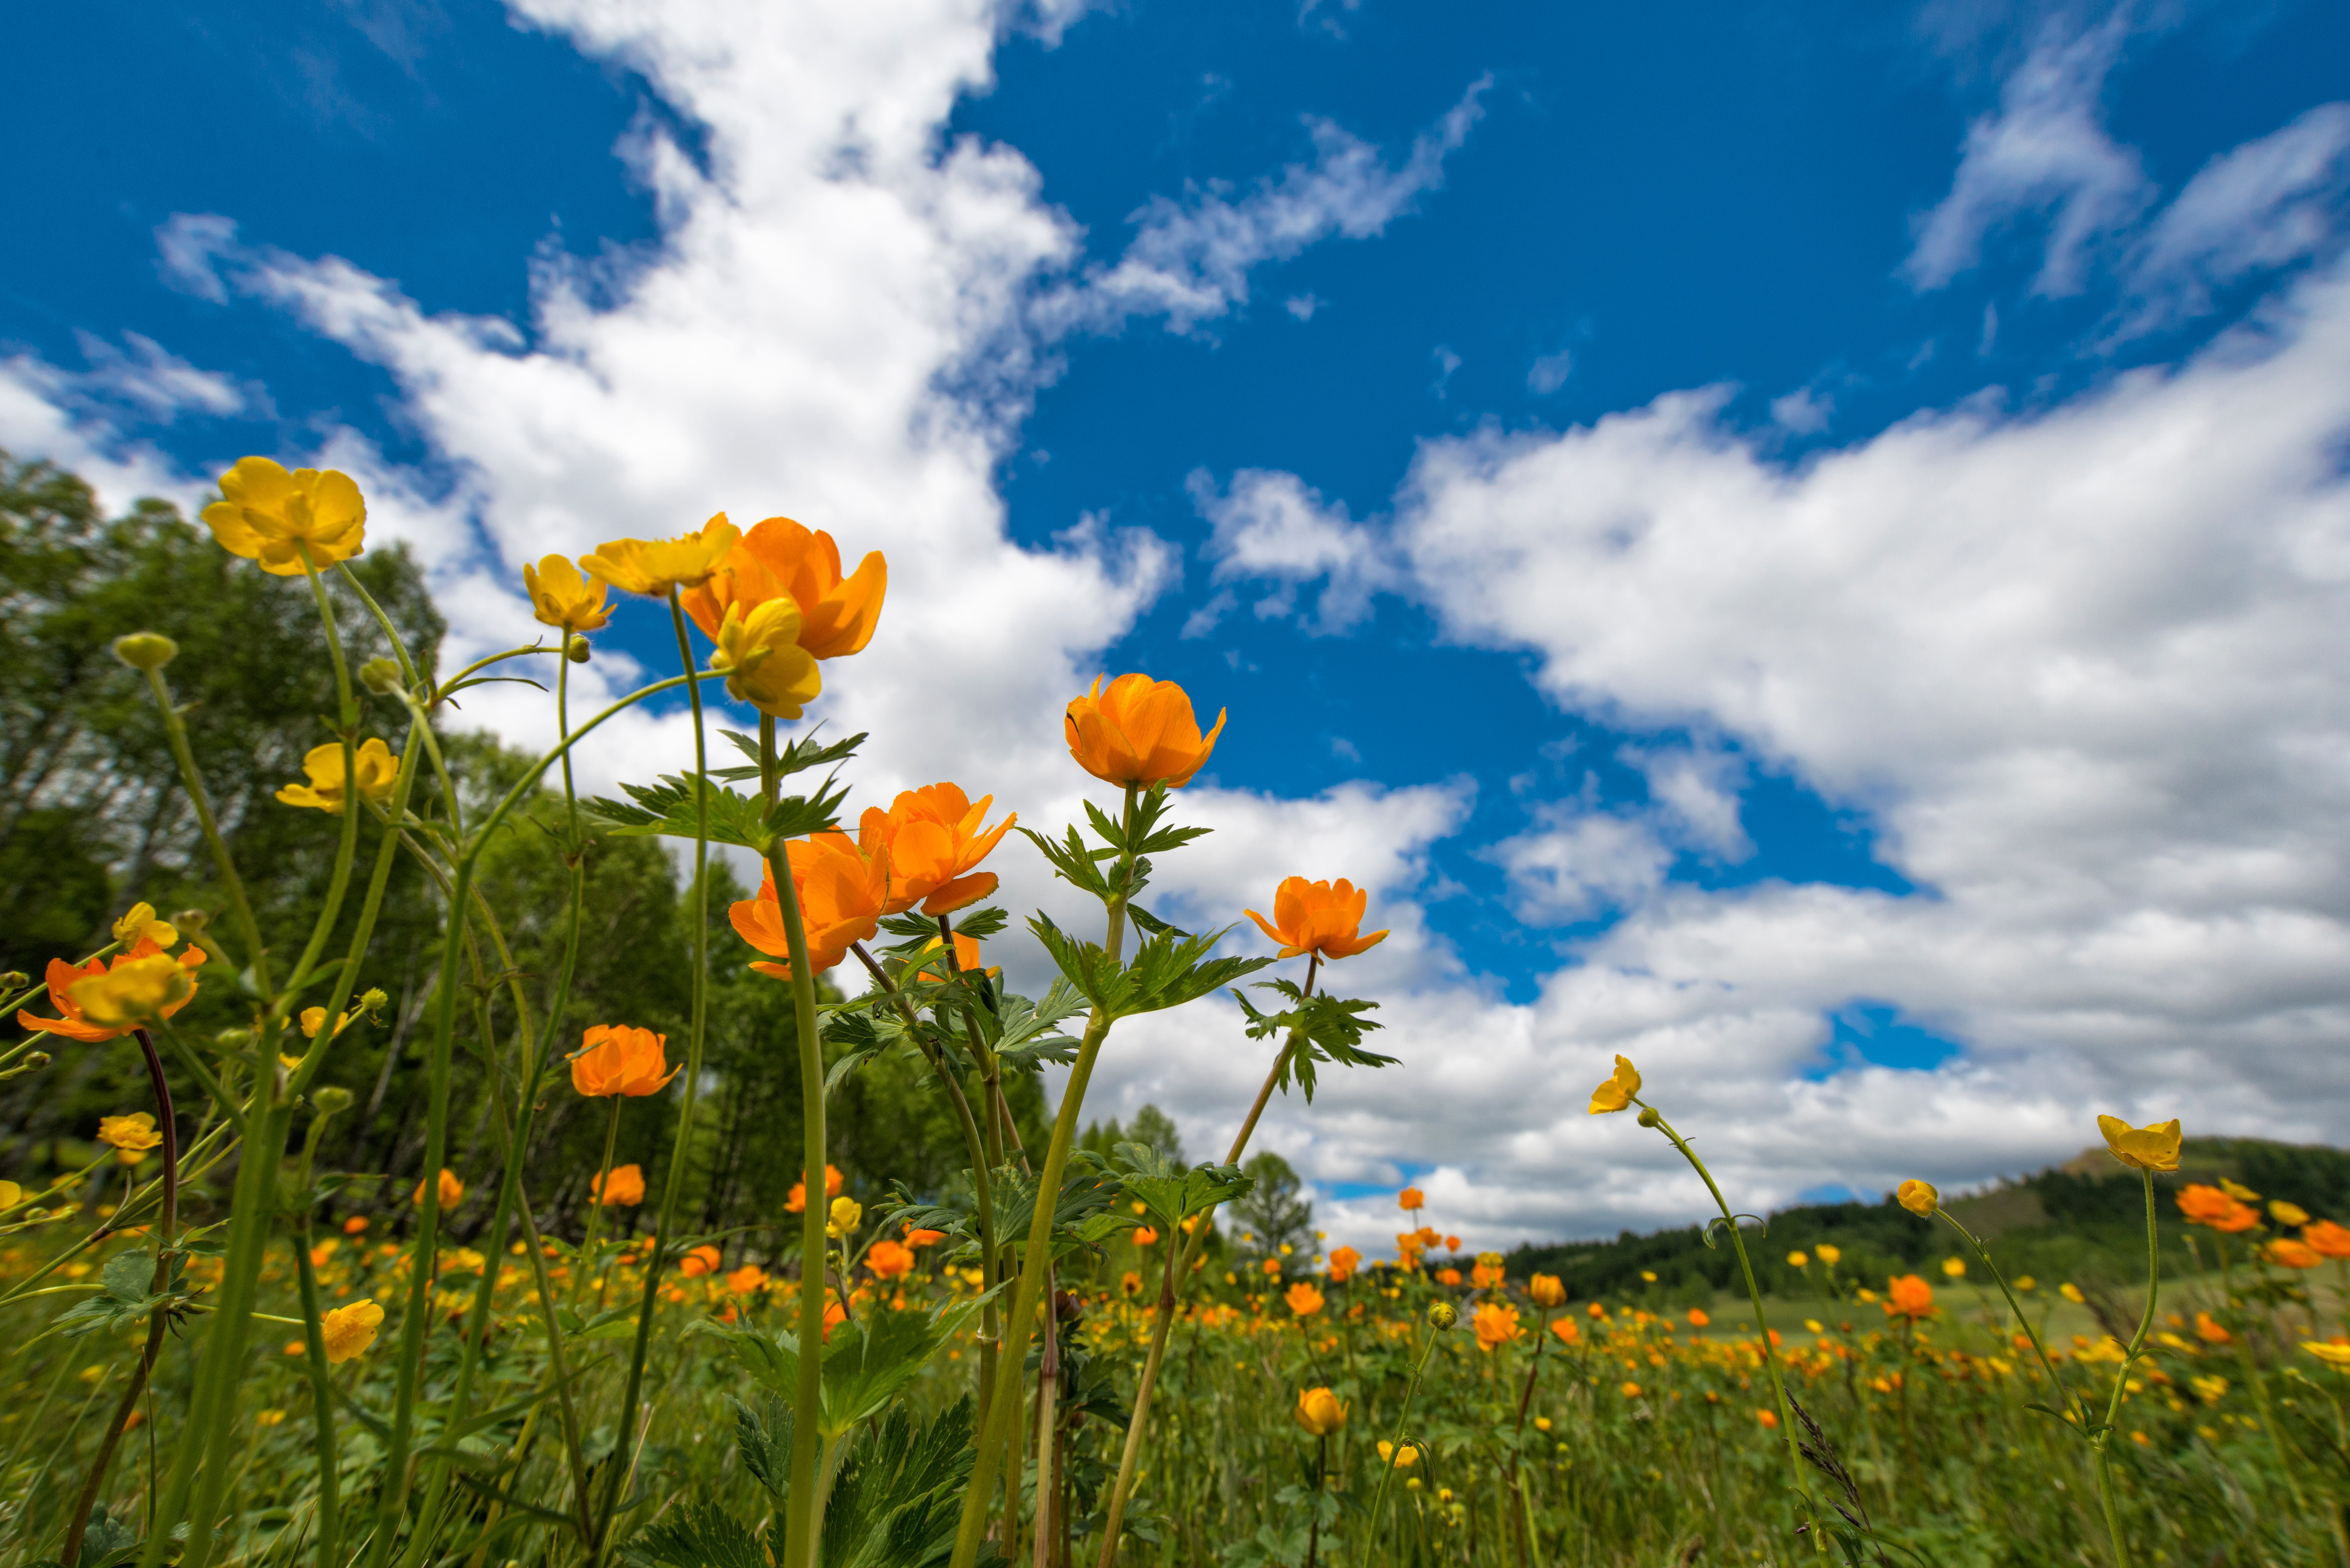 Free photo: Blooming Flowers - garden, nature, spring - Creative ...